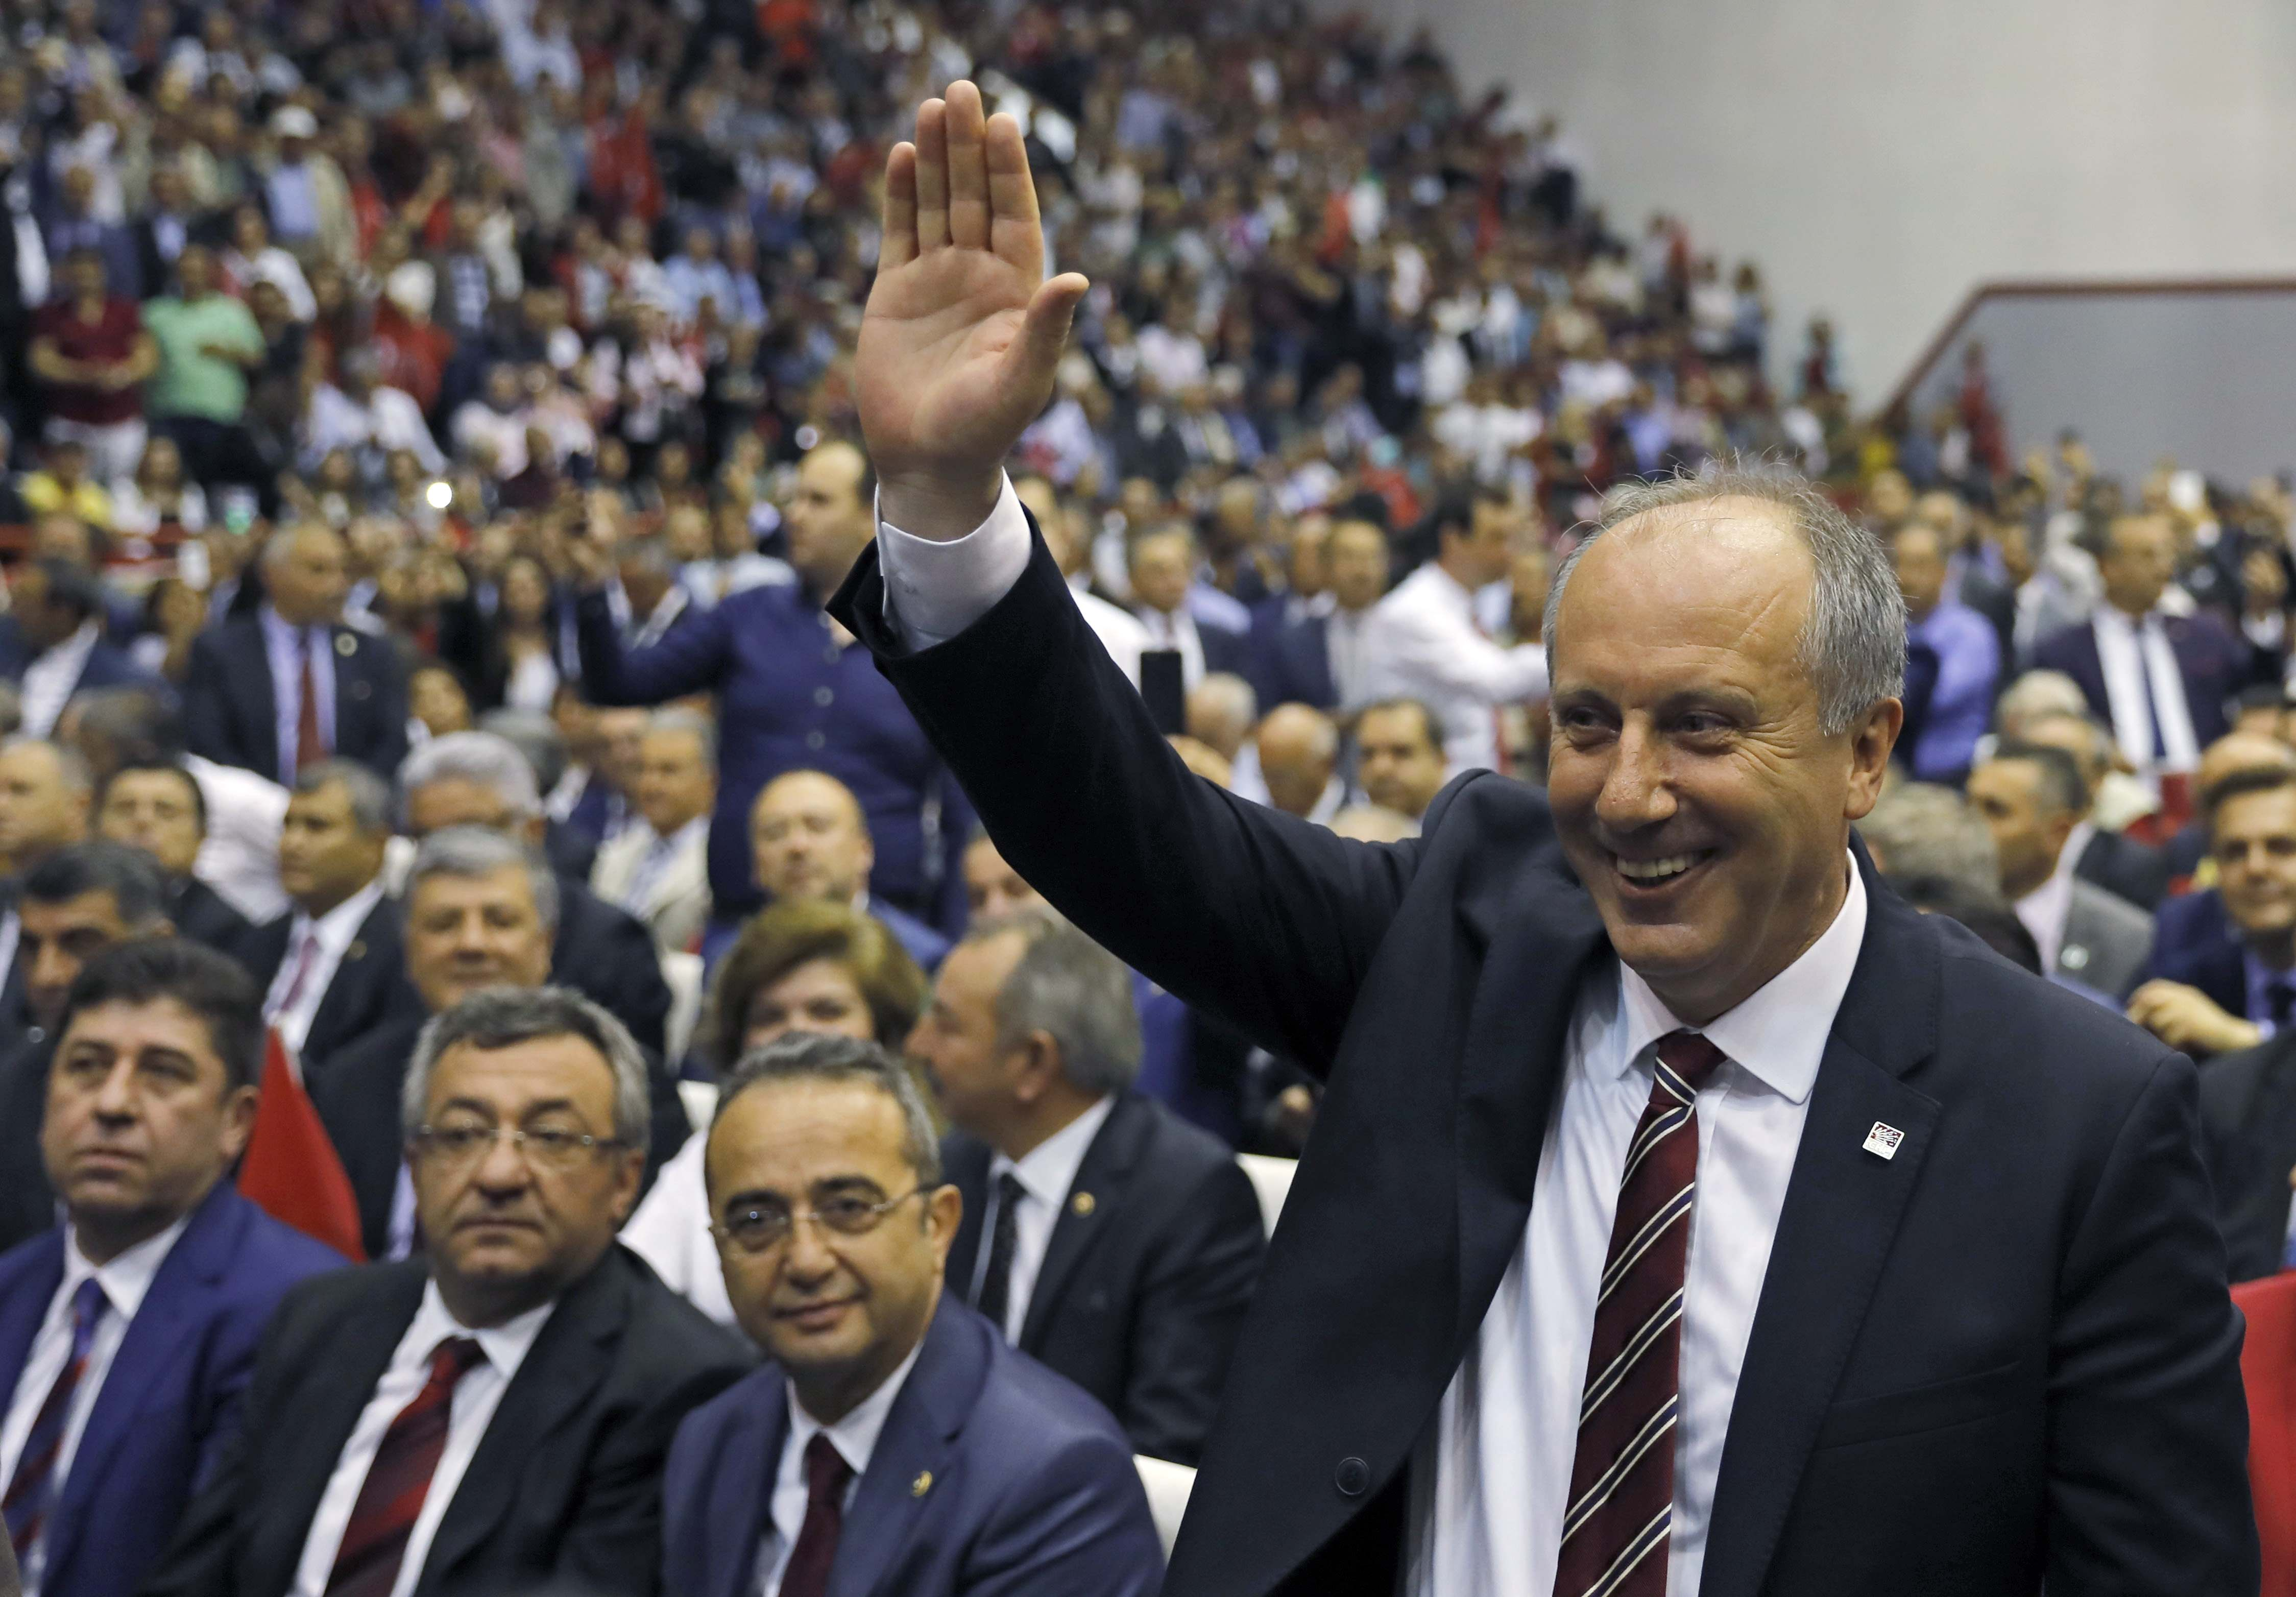 Muharrem Ince, Turkey's main opposition Republican People's Party (CHP) candidate for the upcoming snap presidential election, greets his supporters at a party gathering in Ankara, Turkey, May 4, 2018. REUTERS/Umit Bektas